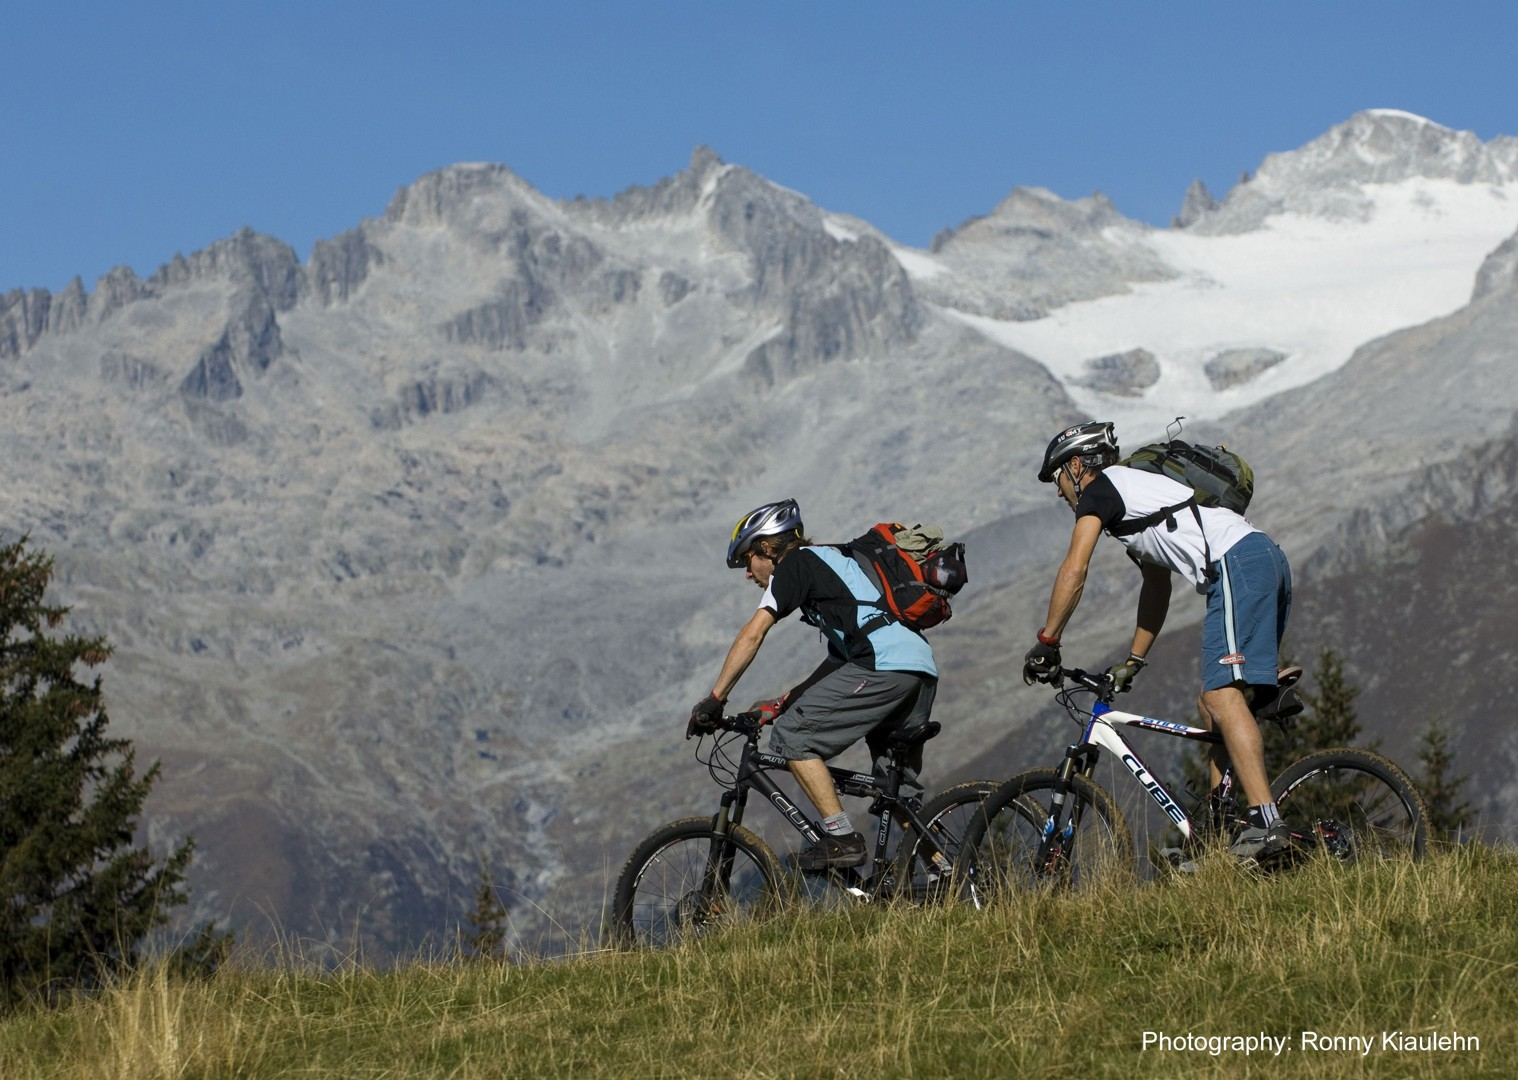 dolomites5.jpg - Italy - Dolomites of Brenta - Guided Mountain Bike Holiday - Italia Mountain Biking